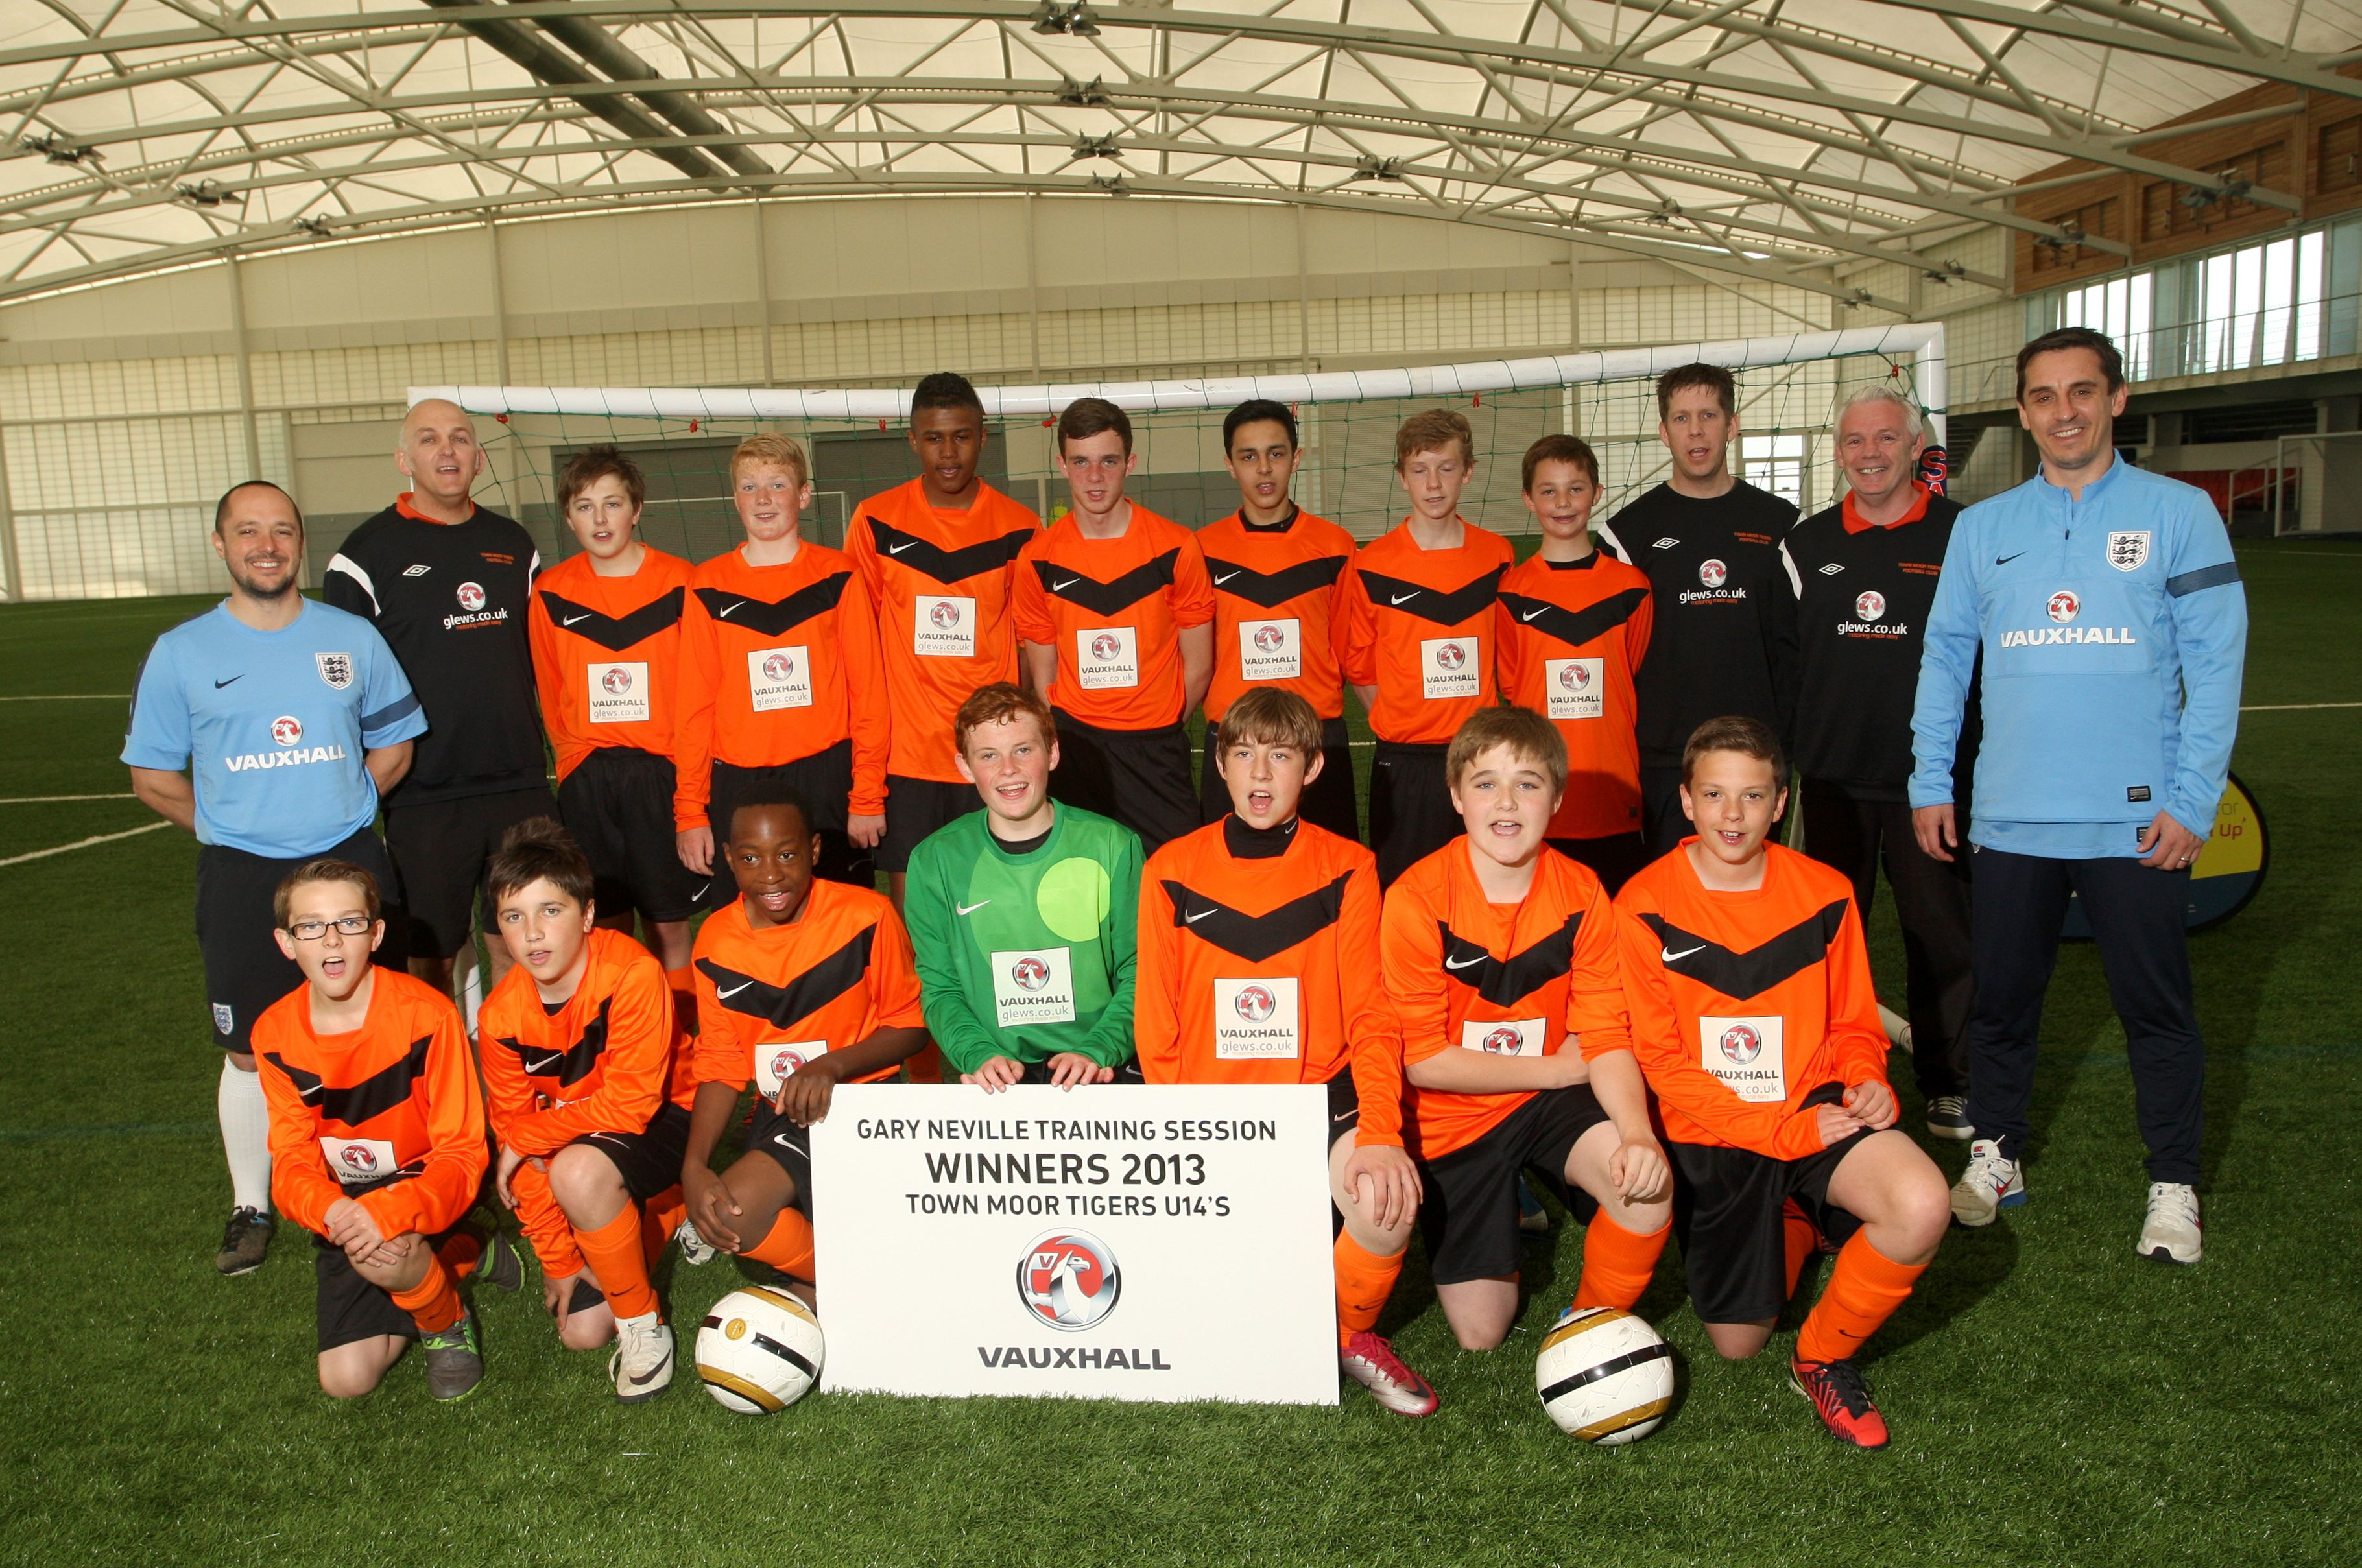 Glews Garage sponsored team put through their paces at St George's Park by Gary Neville